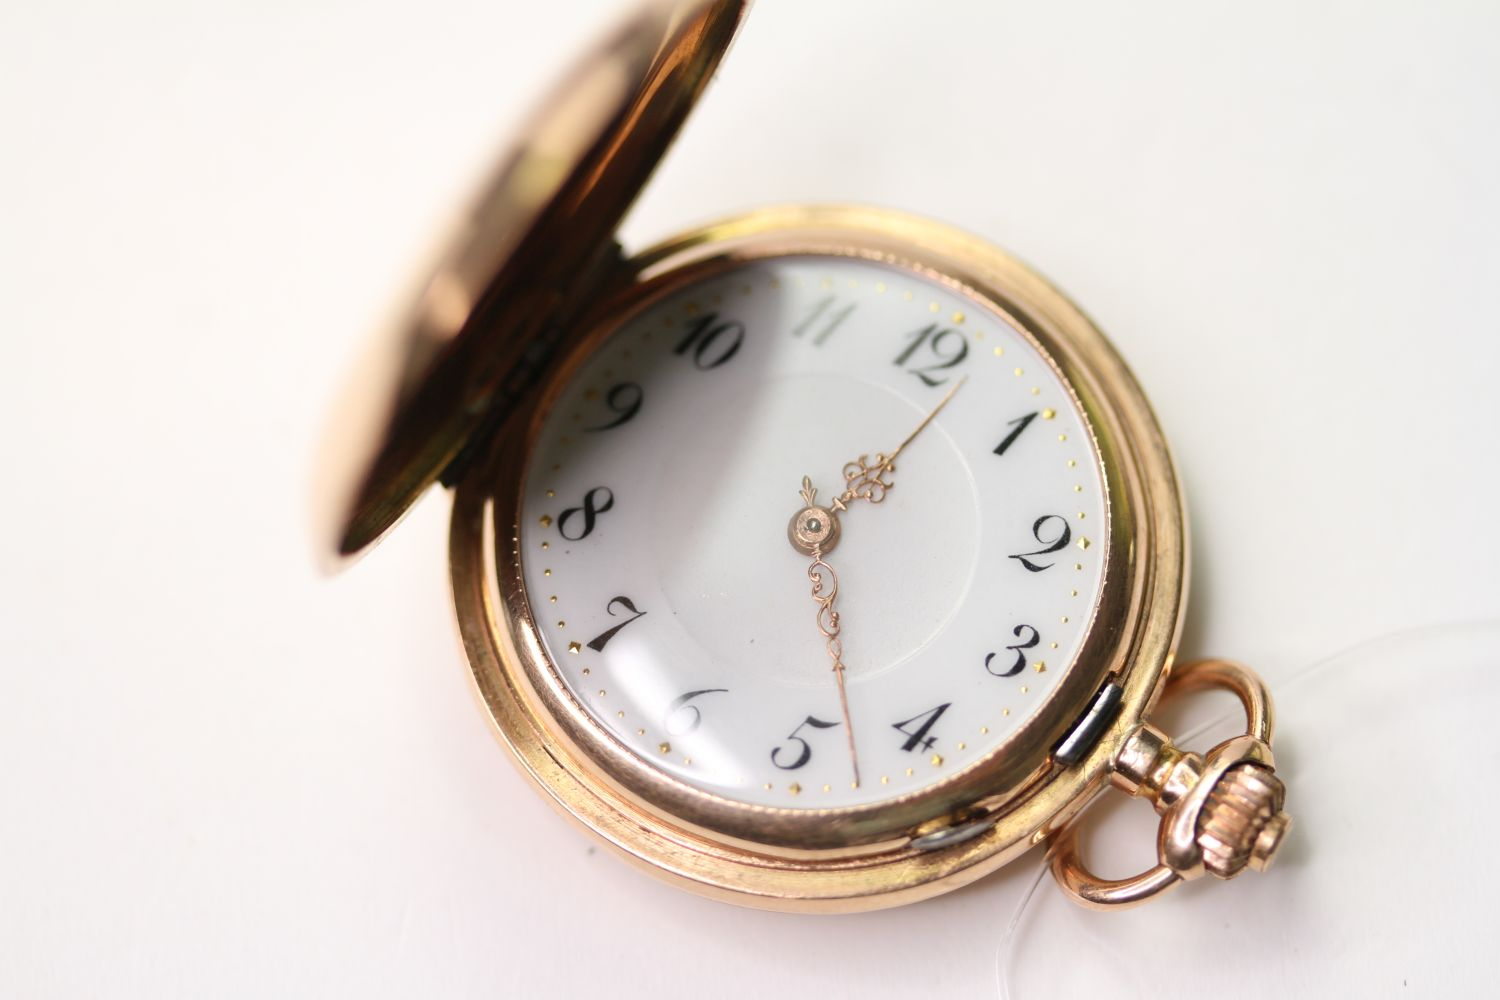 14CT GOLD FOB WATCH, circular white dial with arabic numbers, 31mm case, stamped J.G.F. 585 33523,